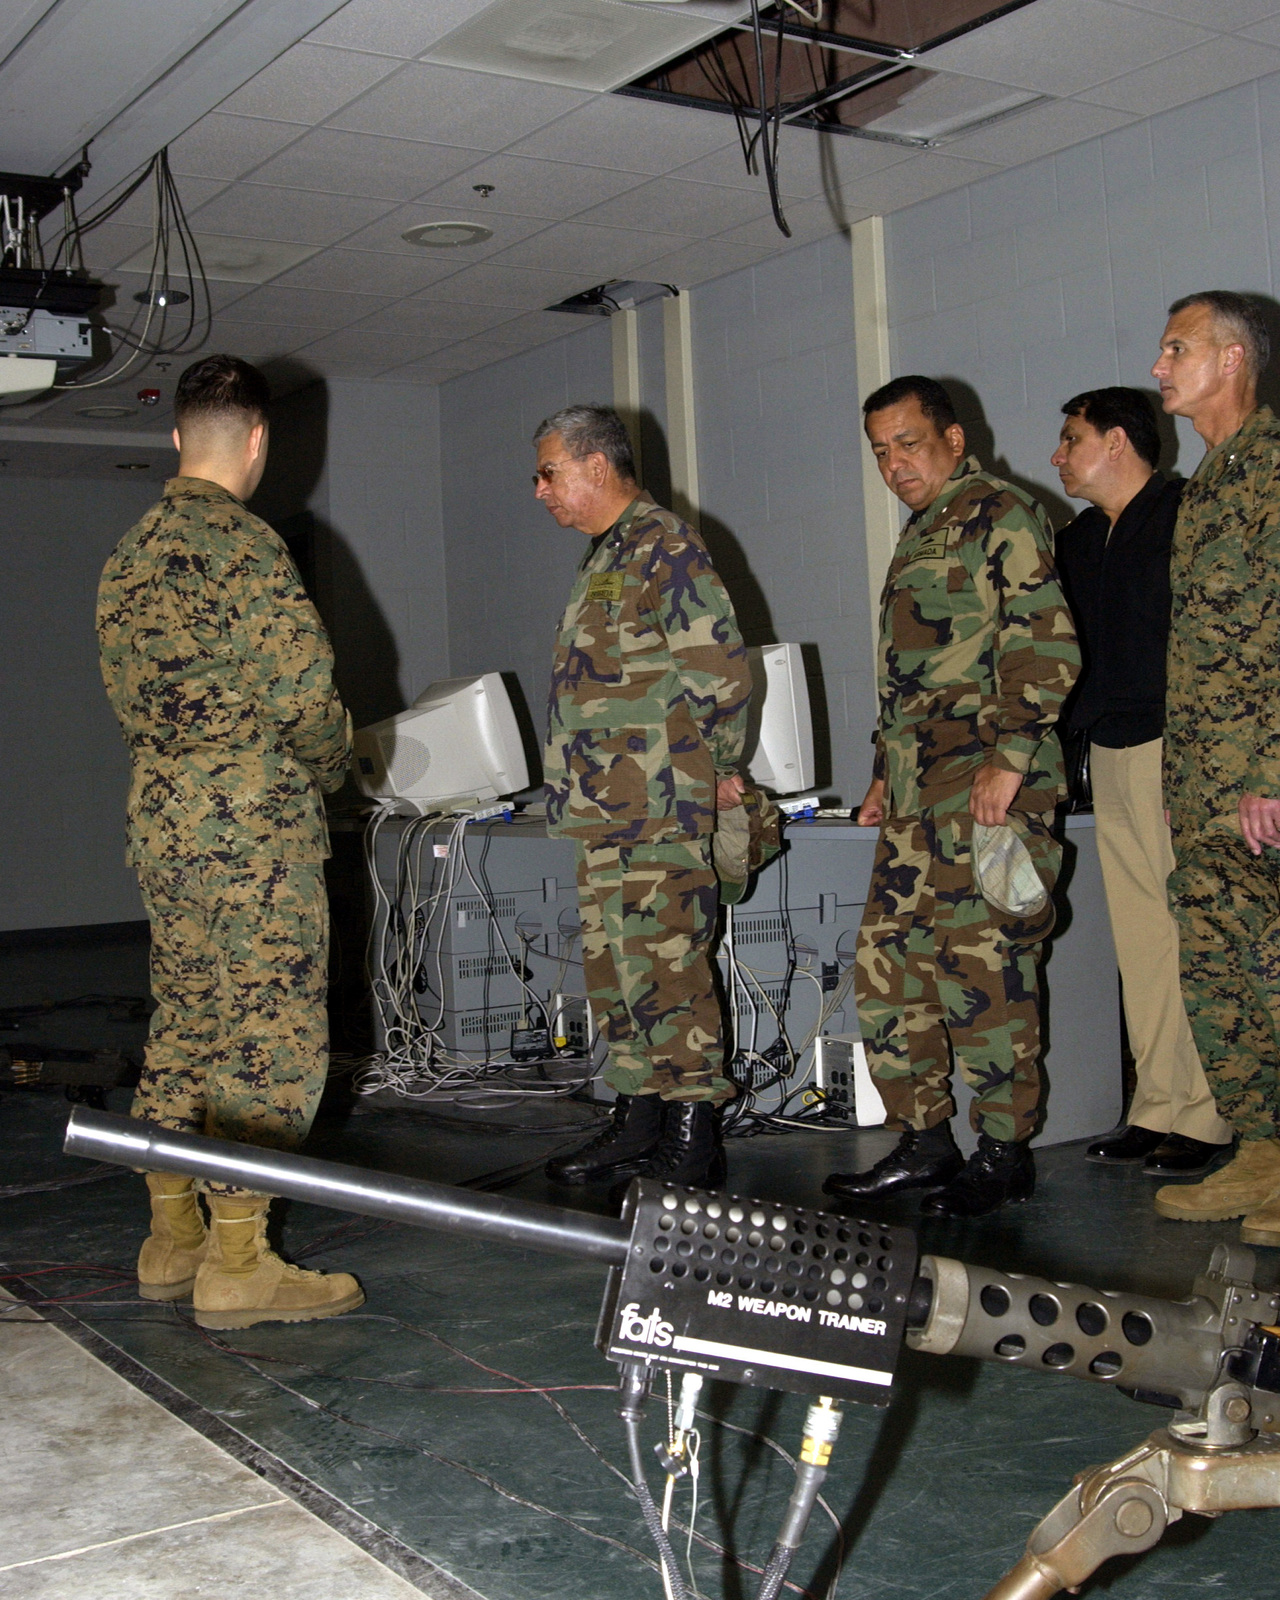 A US Marine Corps (USMC) instructor from the Weapons Field Training Battalion (WFTB) at Marine Corps Recruit Depot (MCRD) Parris Island, South Carolina, briefs the Commandant of the Colombian Marine Corps, Admiral (ADM) Mauricio Soto Gomez, center and Colombian Marine Corps, Sergeant Major (SGMAJ) Guerrero, third from right, on state-of-the-art indoor small arms live fire simulators